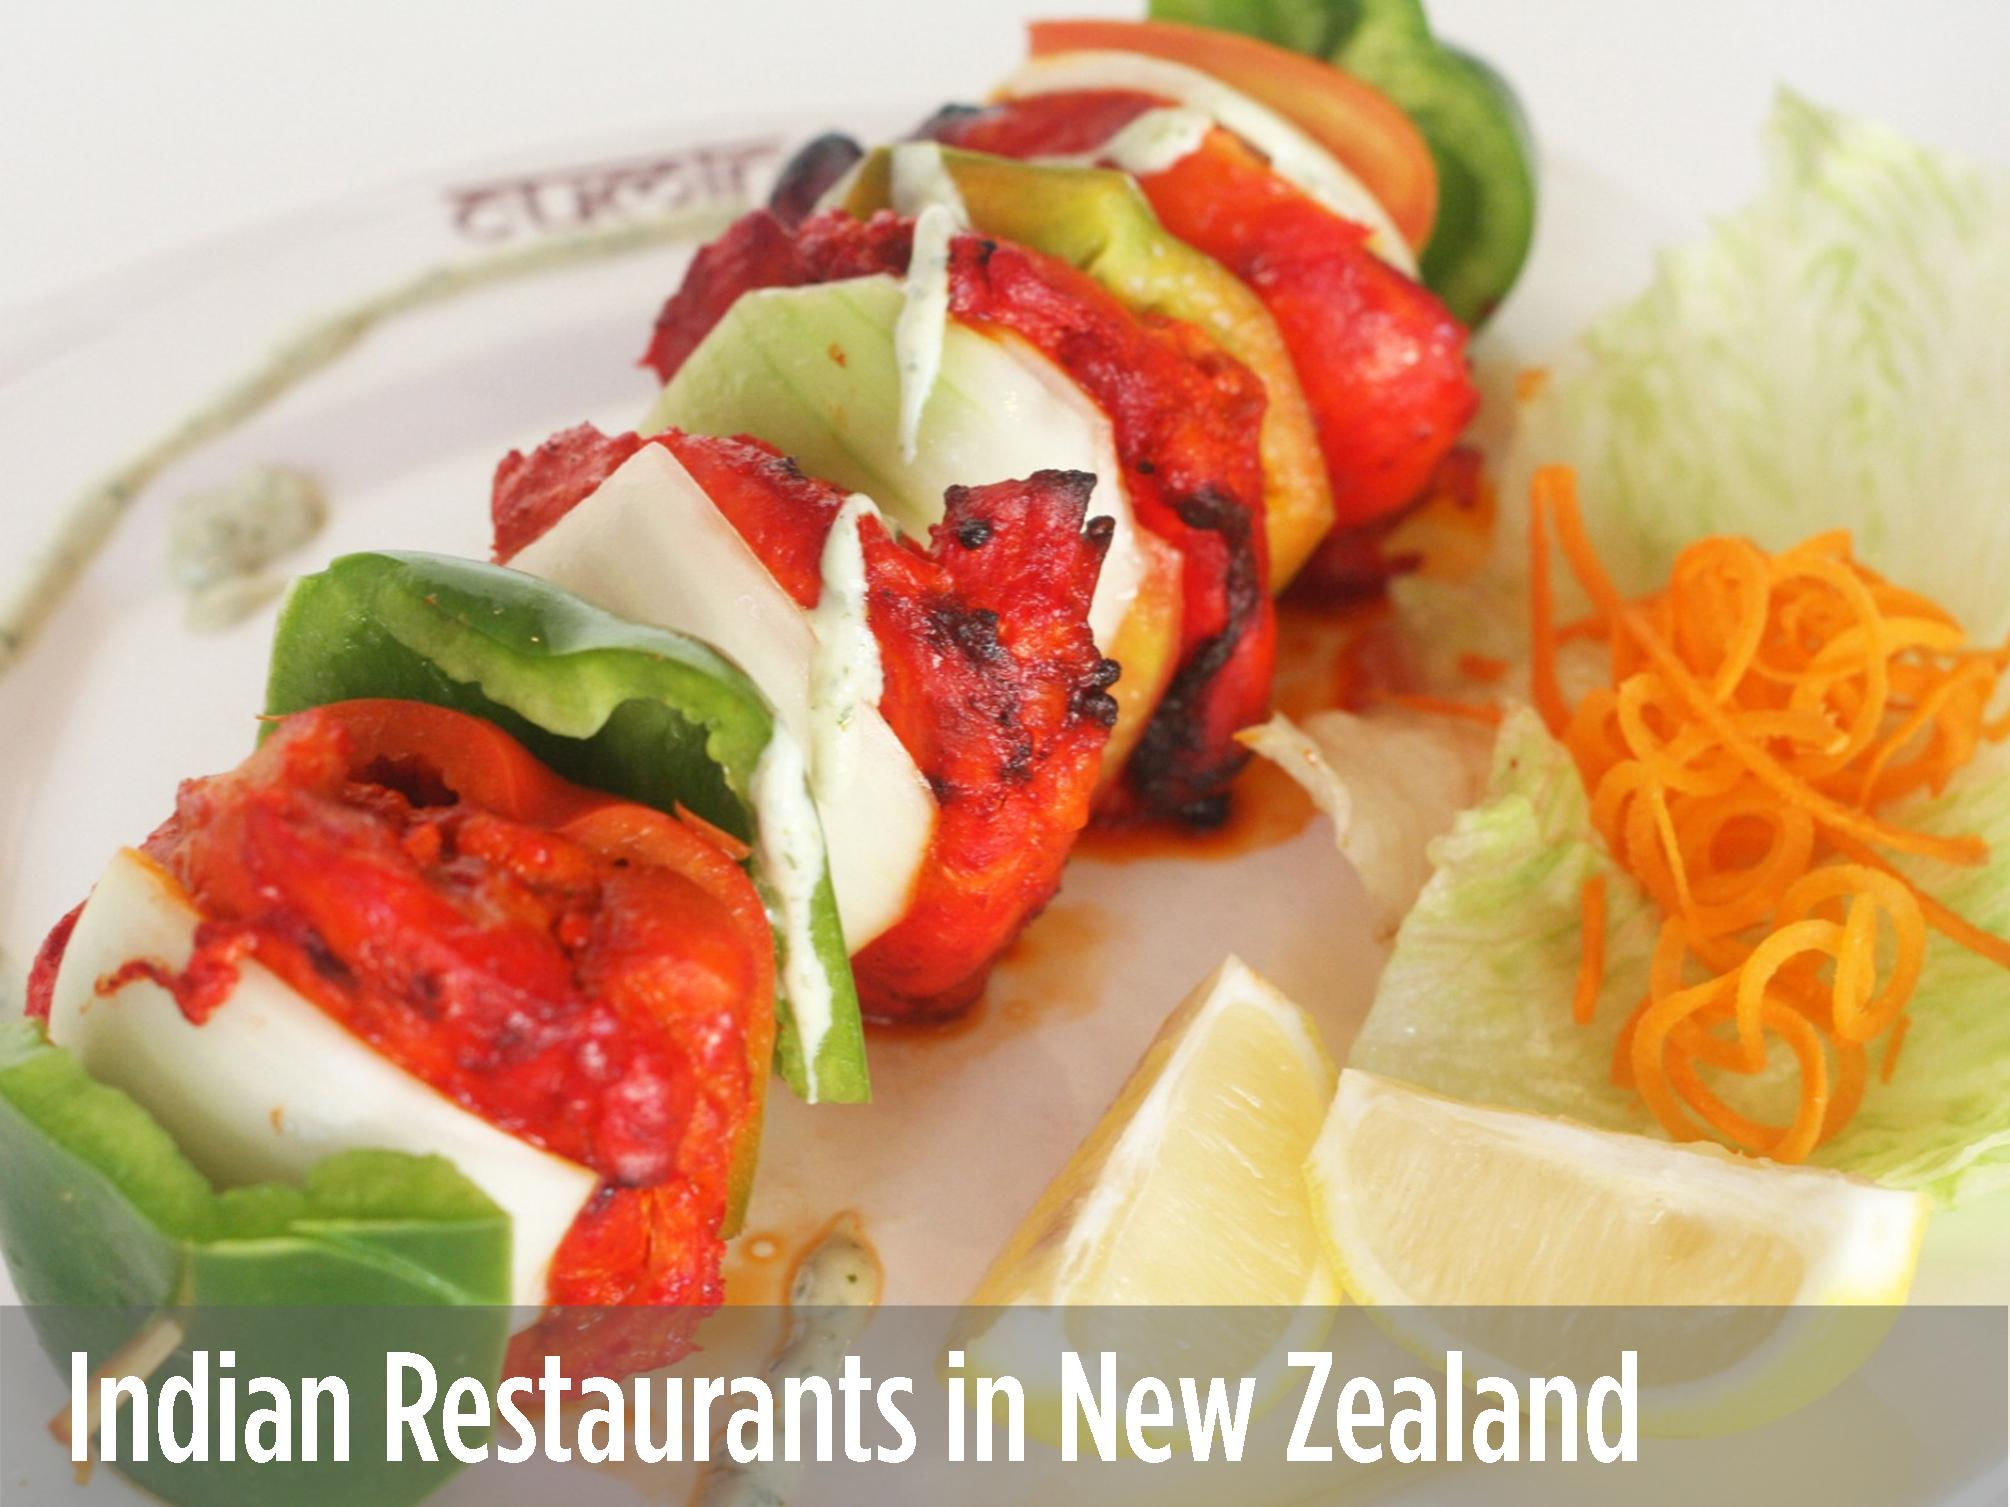 Indian Restaurants in New Zealand